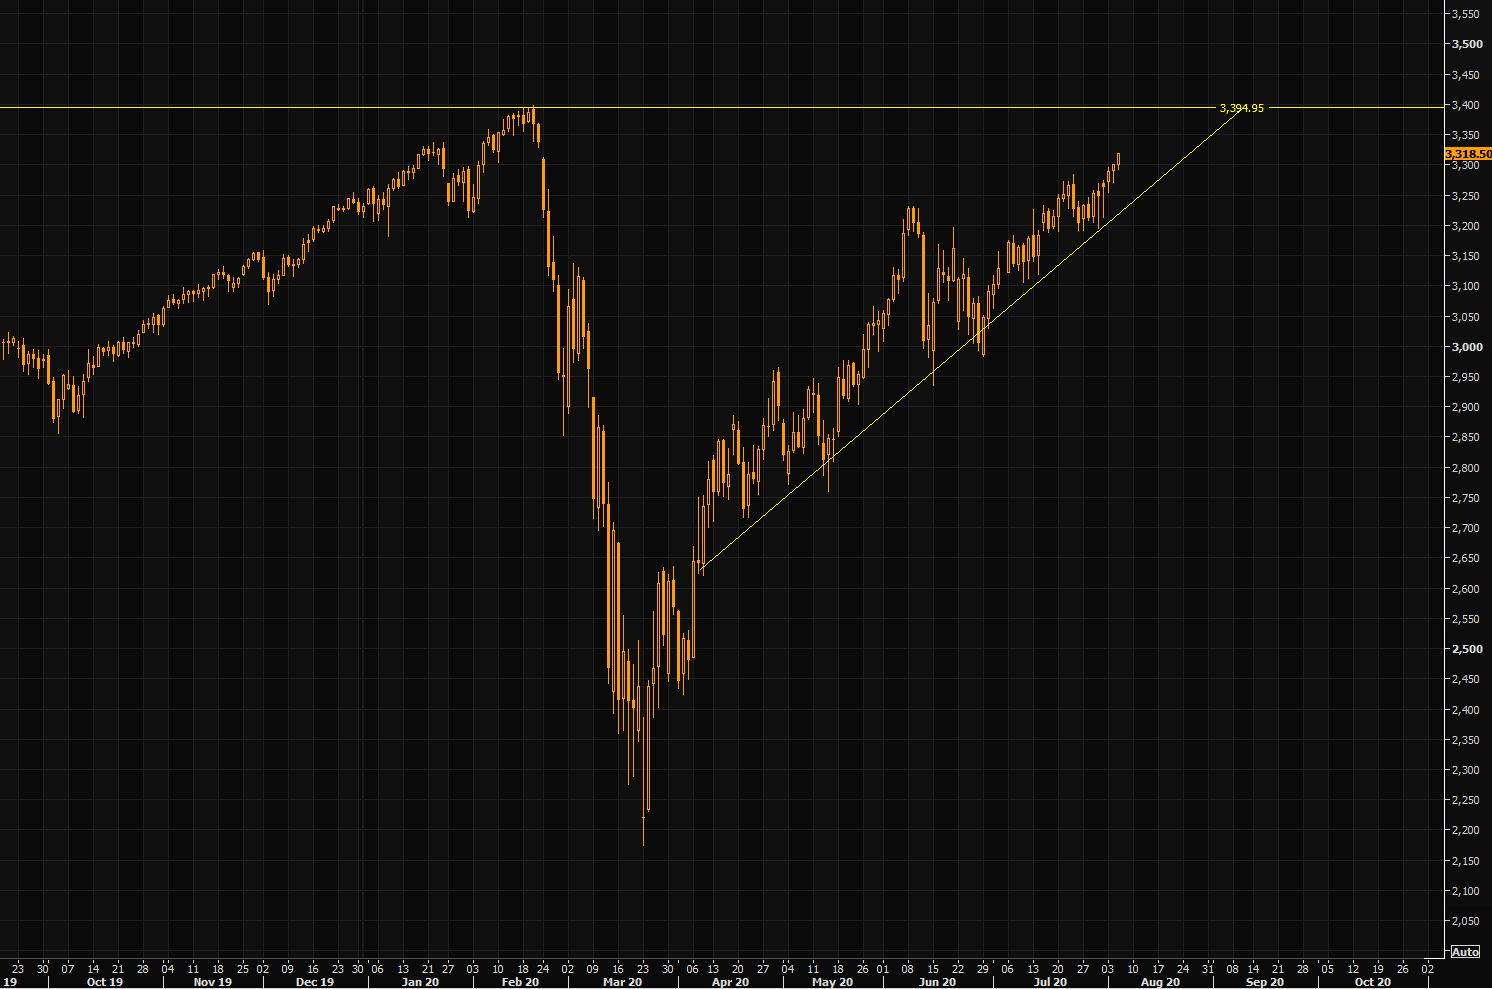 S&P - above the summer box, but the break out lacks proper momentum as we approach huge ATH levels....